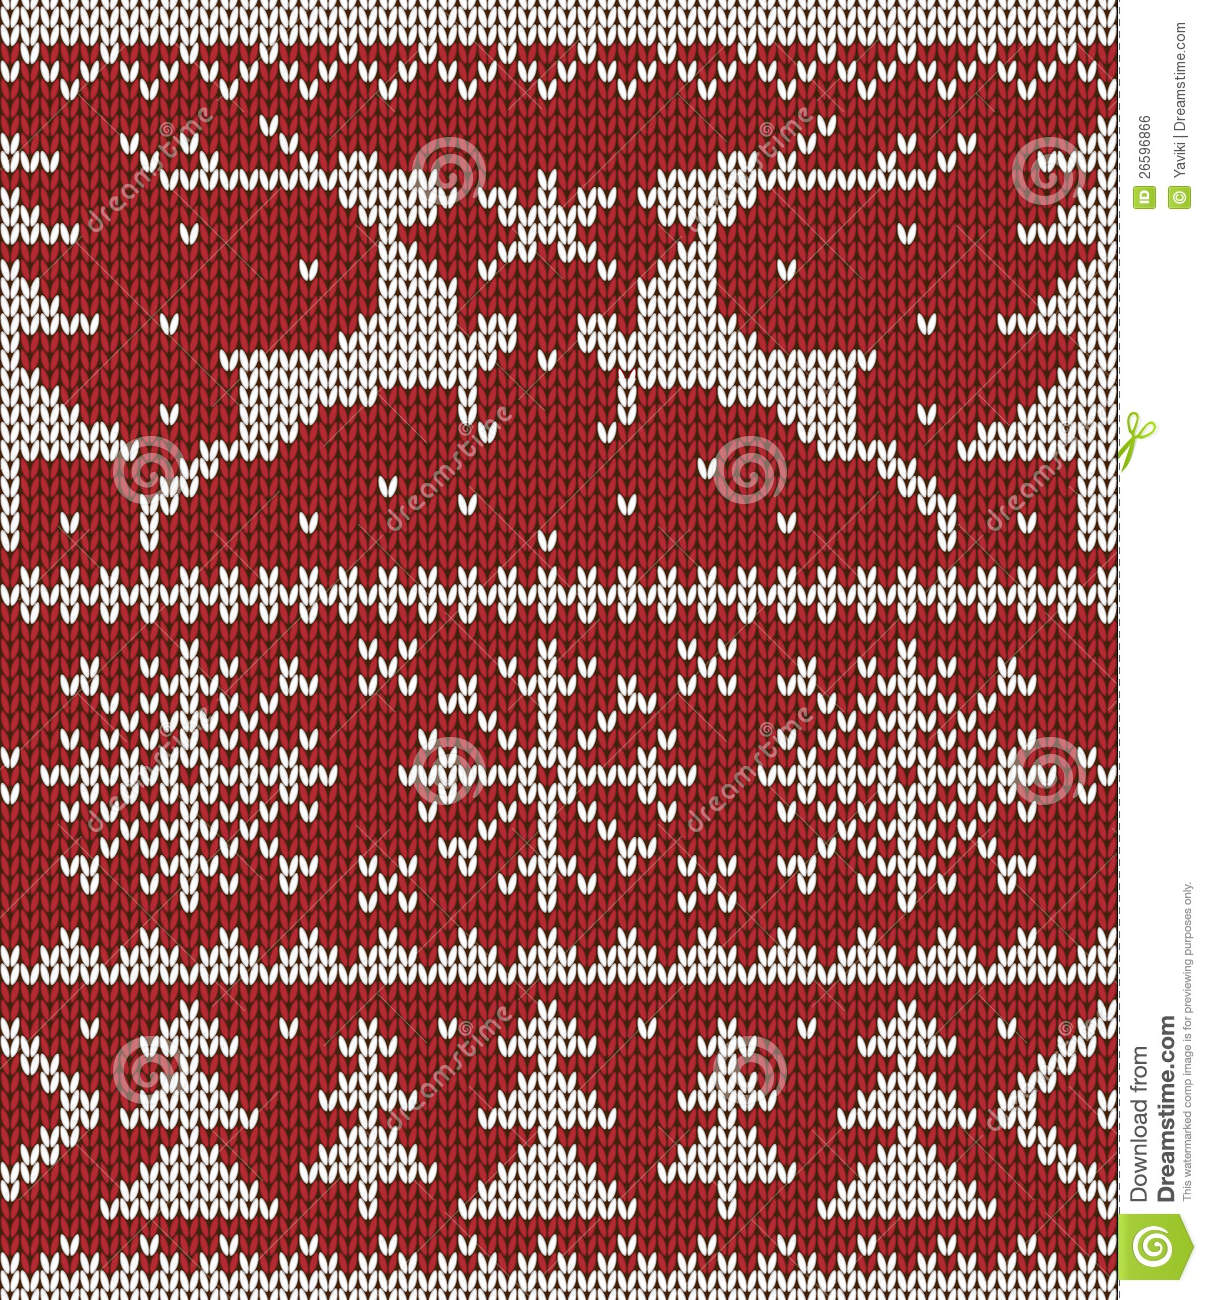 Knitting Pattern Christmas Jumper : Christmas Knitted Pattern Royalty Free Stock Image - Image: 26596866